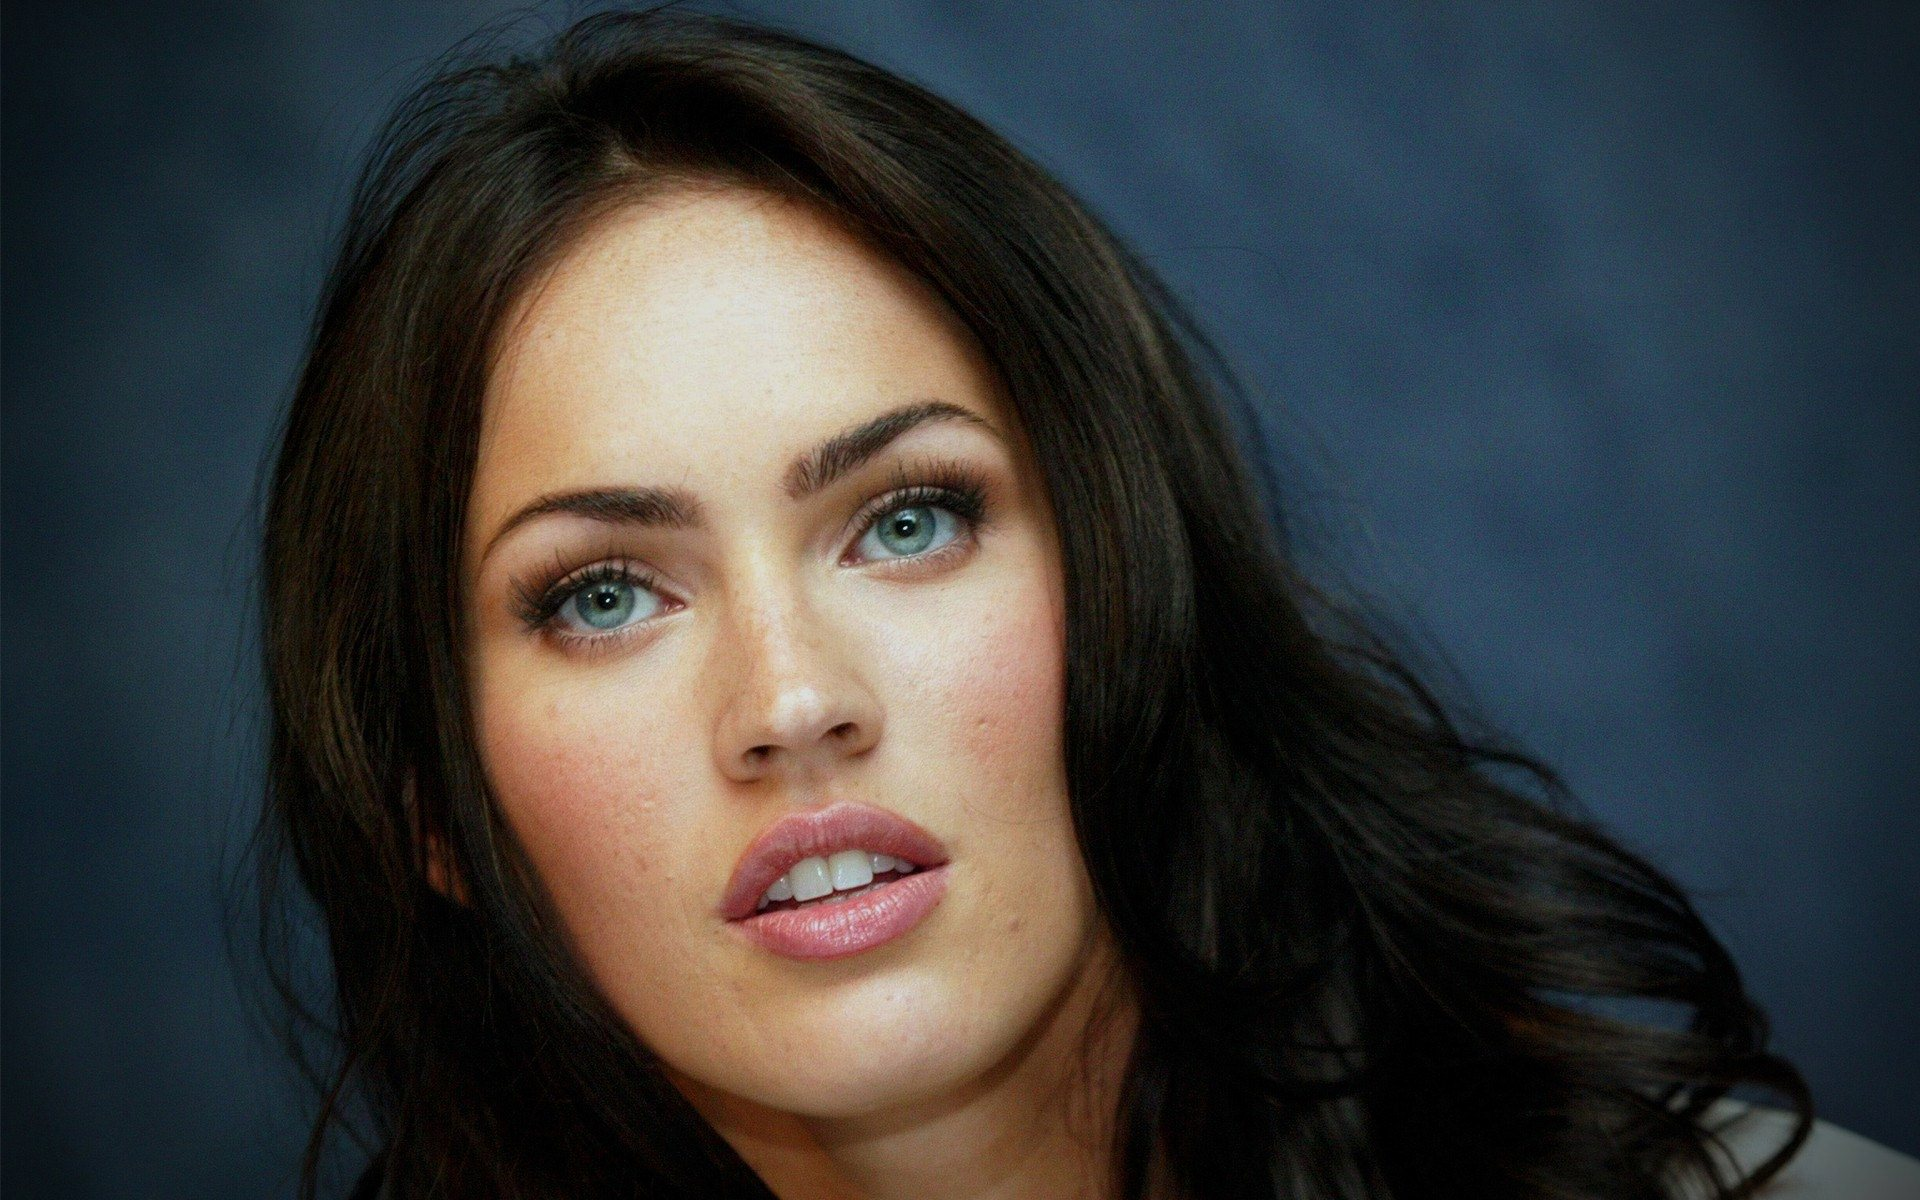 megan fox wallpaper background